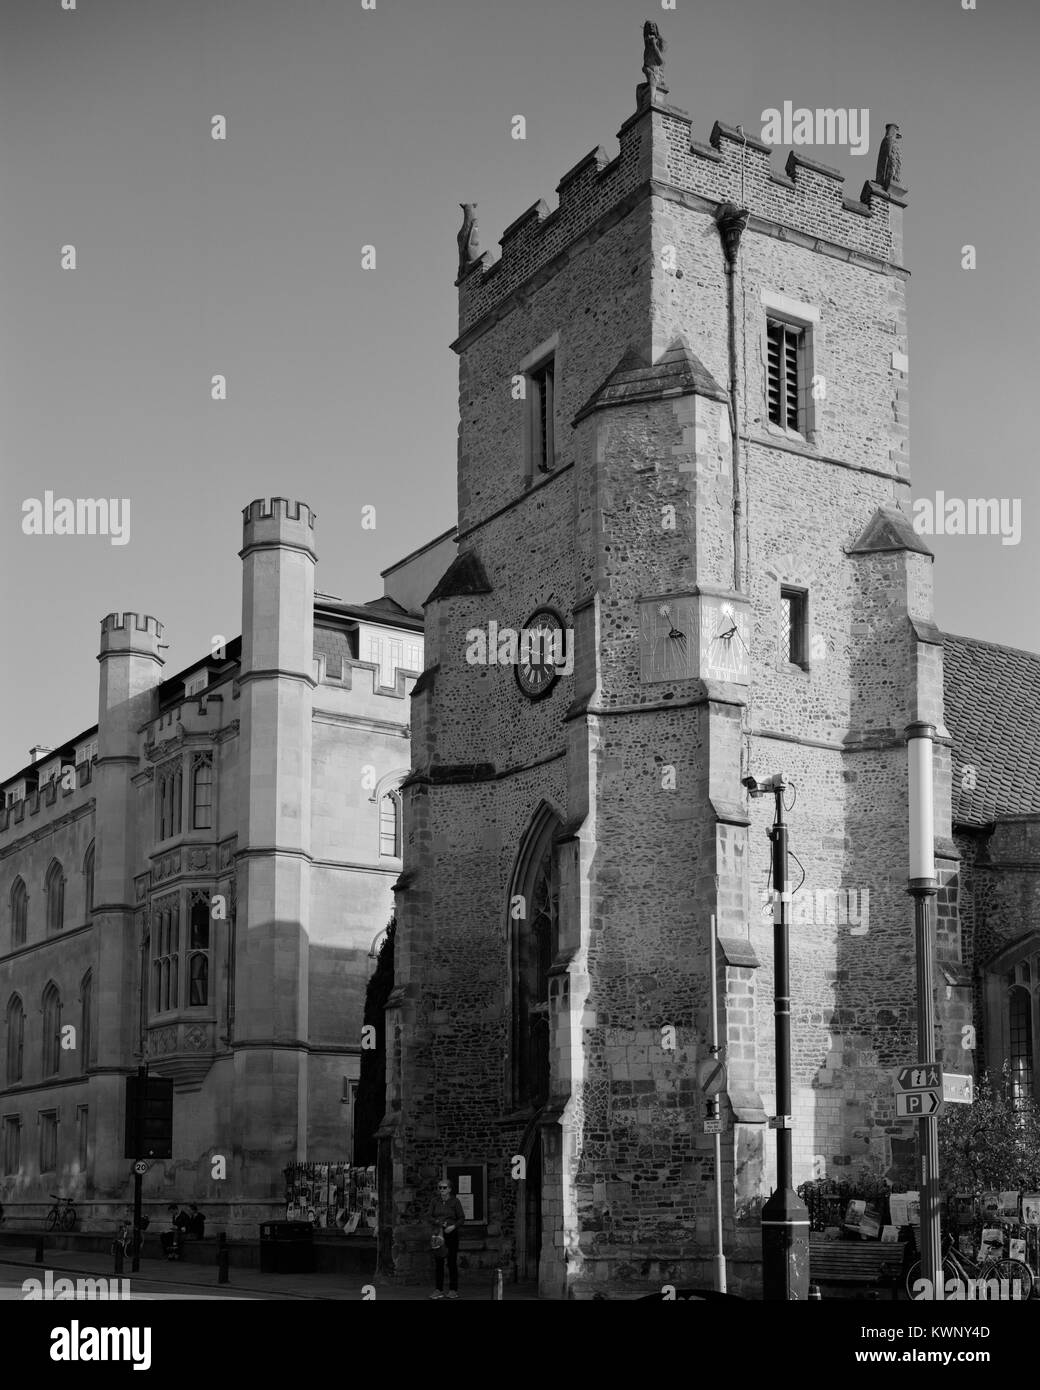 St Botolph's Church, King's Parade Cambridge - Stock Image